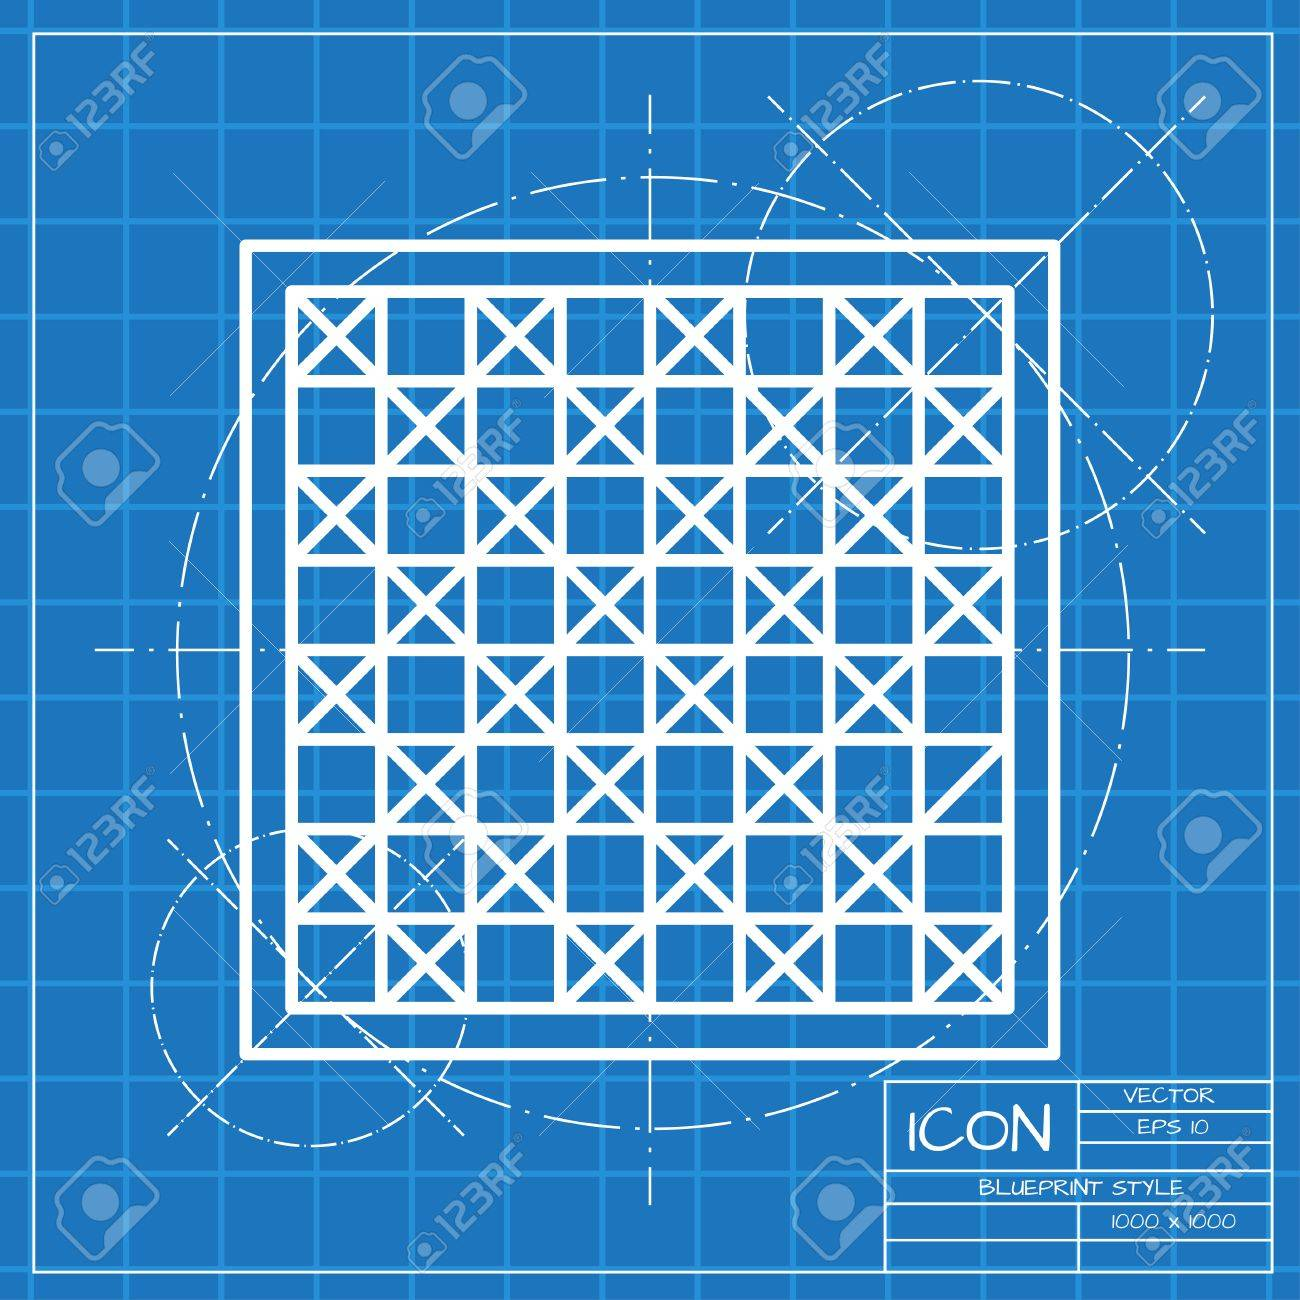 Vector classic blueprint of checkers board icon on engineer and vector vector classic blueprint of checkers board icon on engineer and architect background malvernweather Image collections